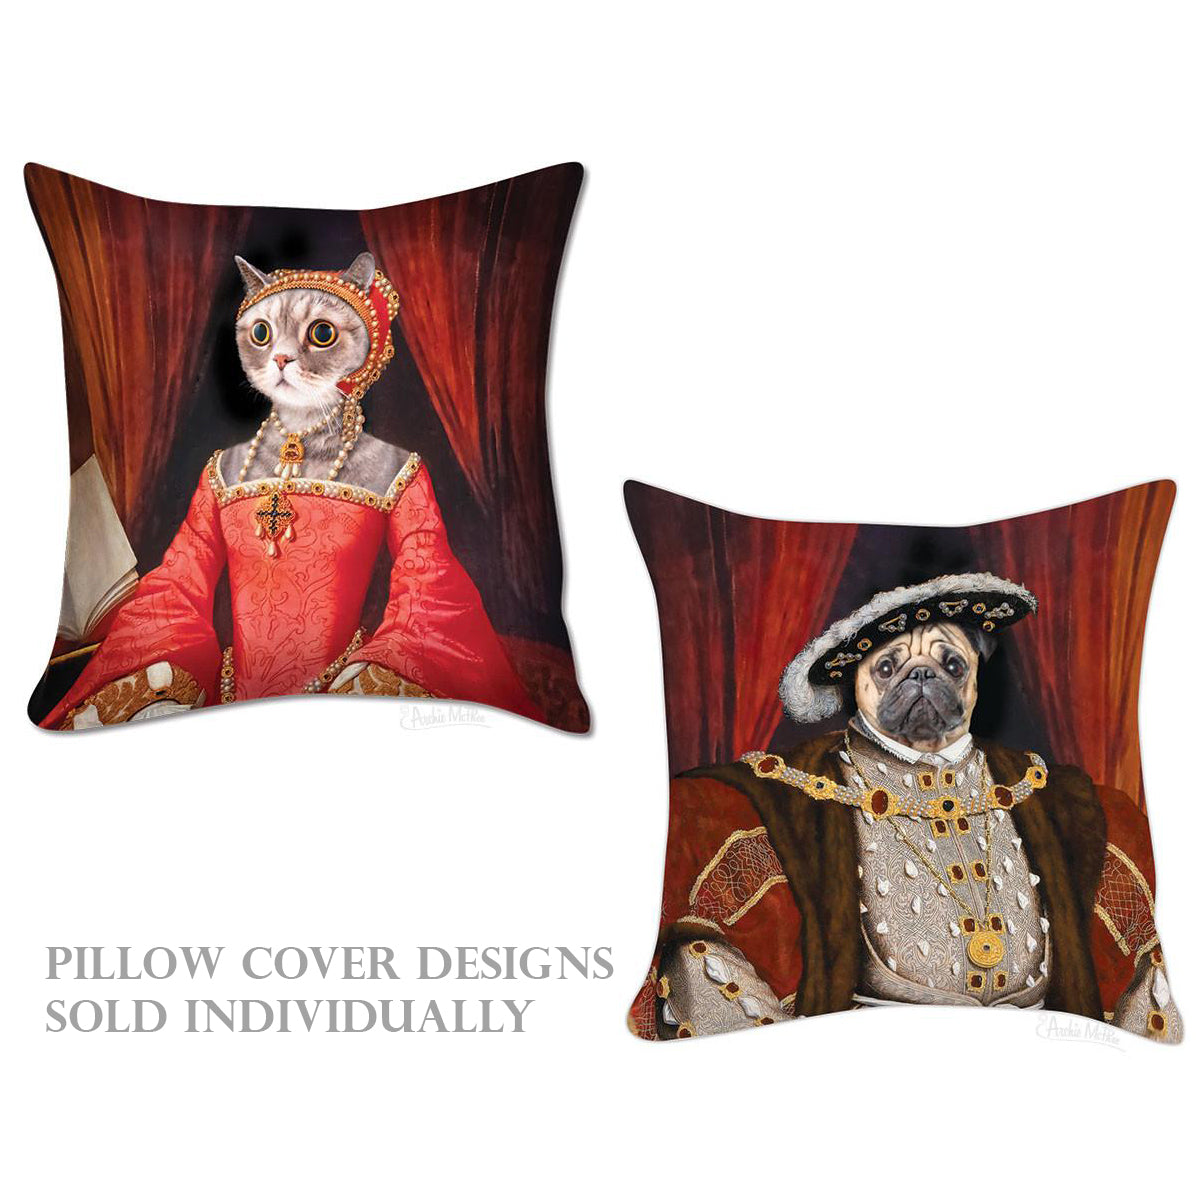 Renaissance Cat/Pug Pillow Covers